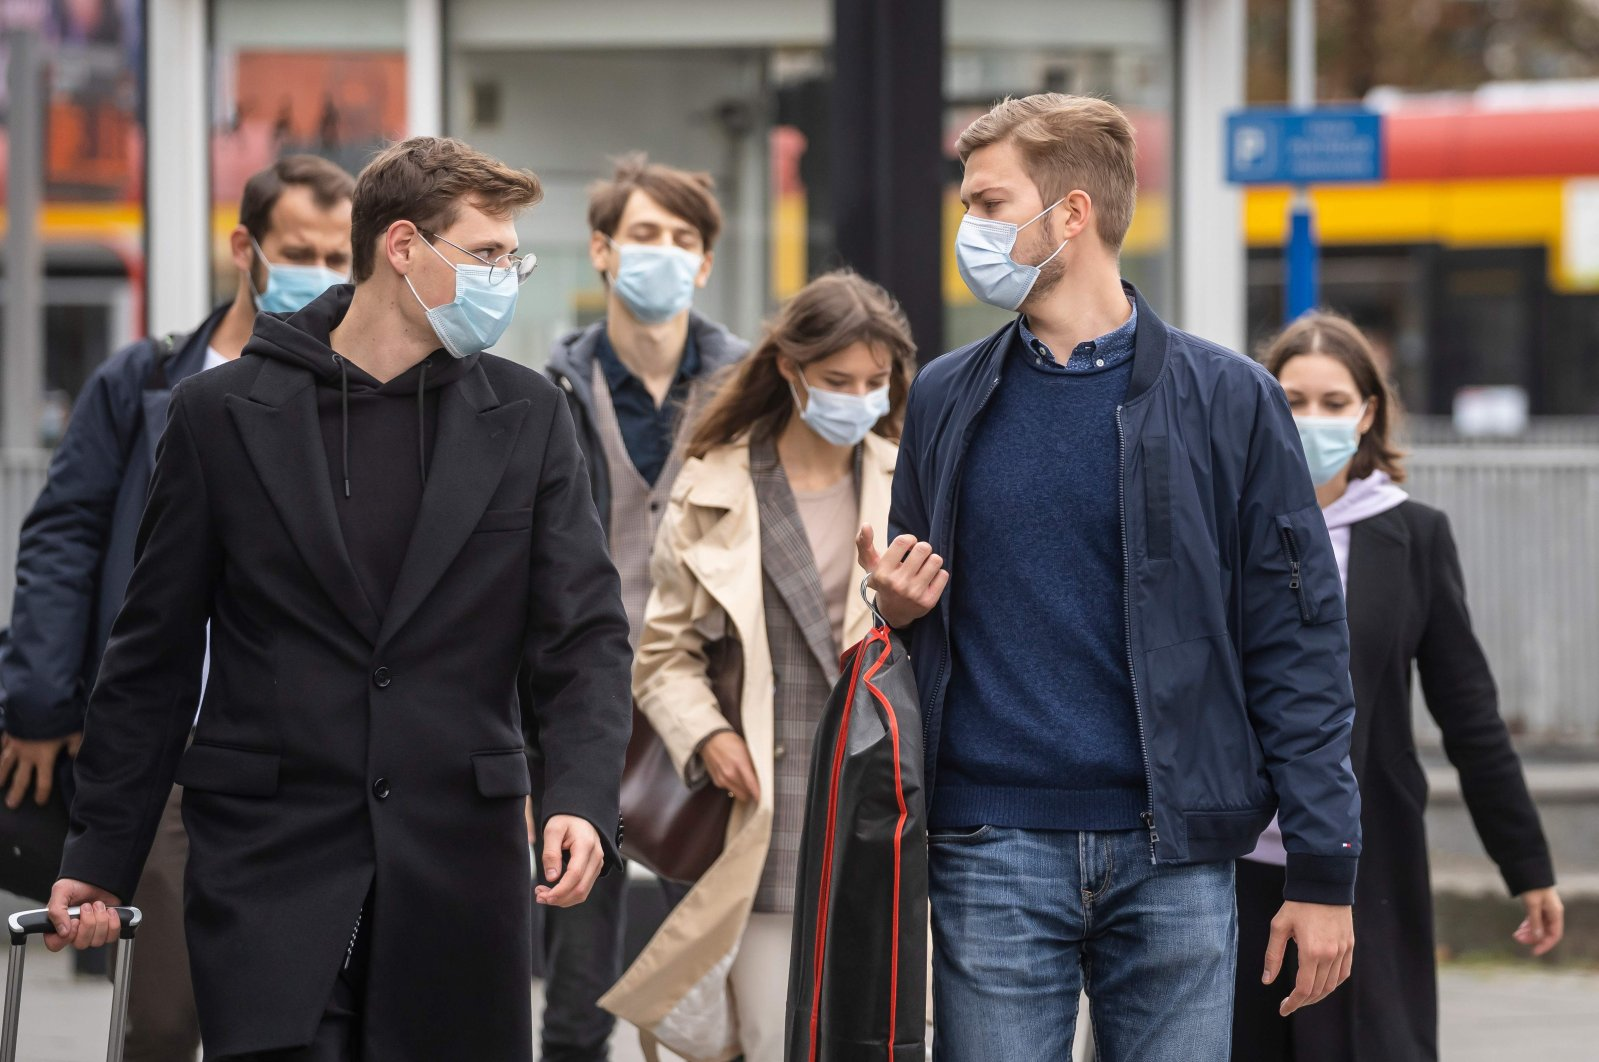 People wearing protective masks are seen on the streets of Warsaw after the Polish government tightened restrictions in the fight against the coronavirus and introduced mandatory mouth and nose coverage in public places, Oct. 10, 2020. (AFP Photo)